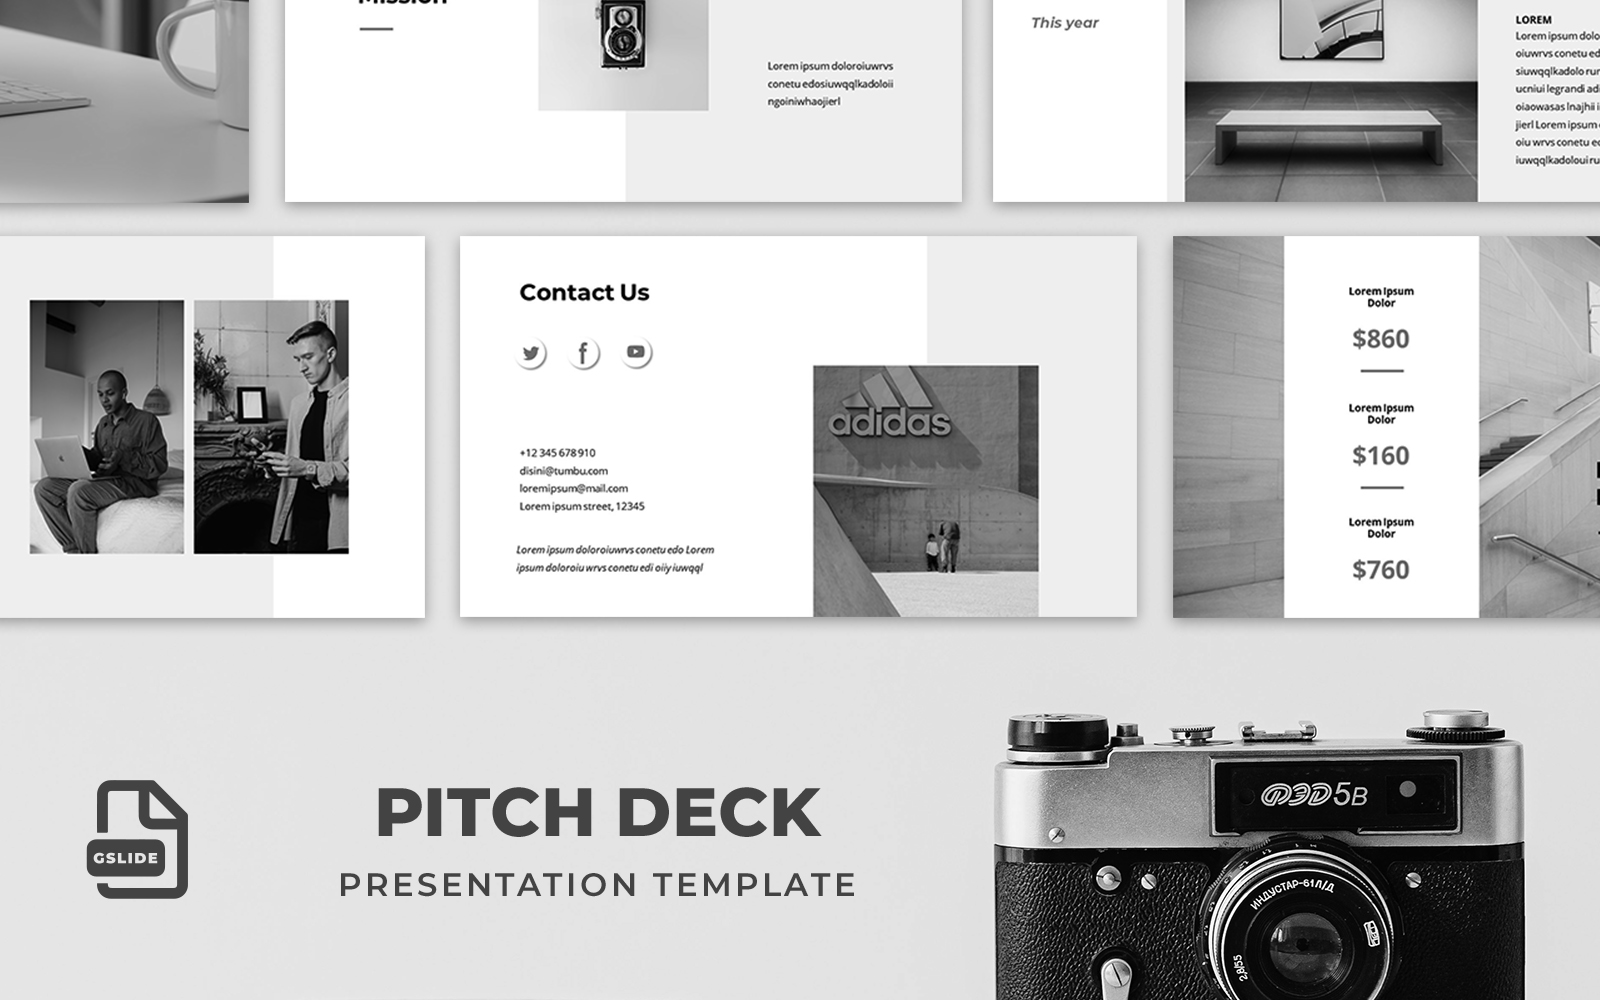 Pitch Deck - Presentation Template №124195